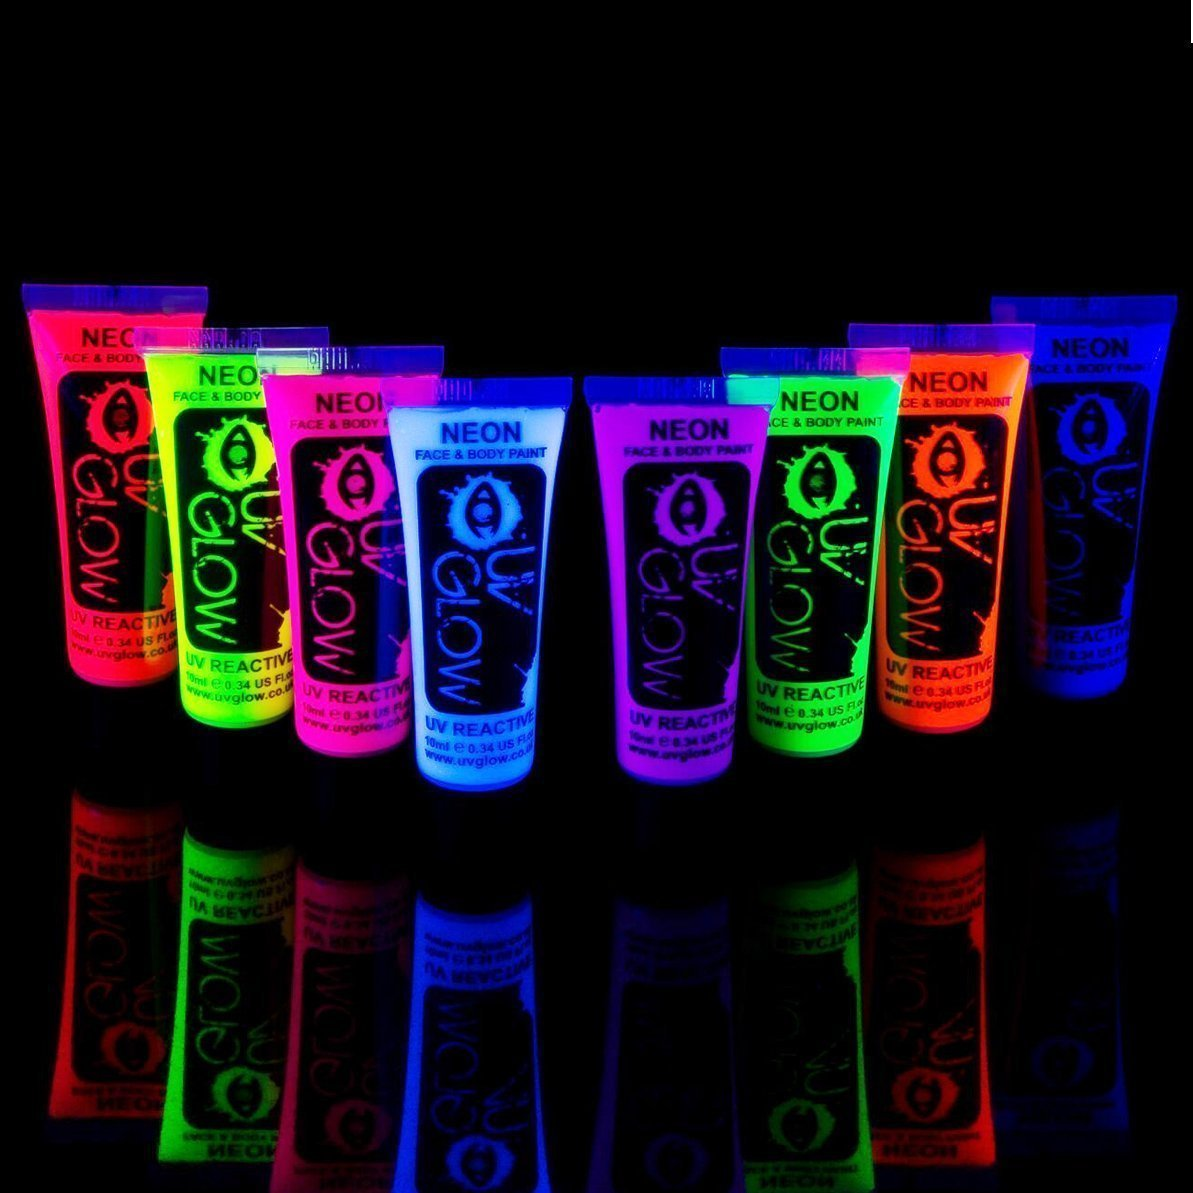 details about neon glow in the dark face and body paint party 8pcs uv. Black Bedroom Furniture Sets. Home Design Ideas